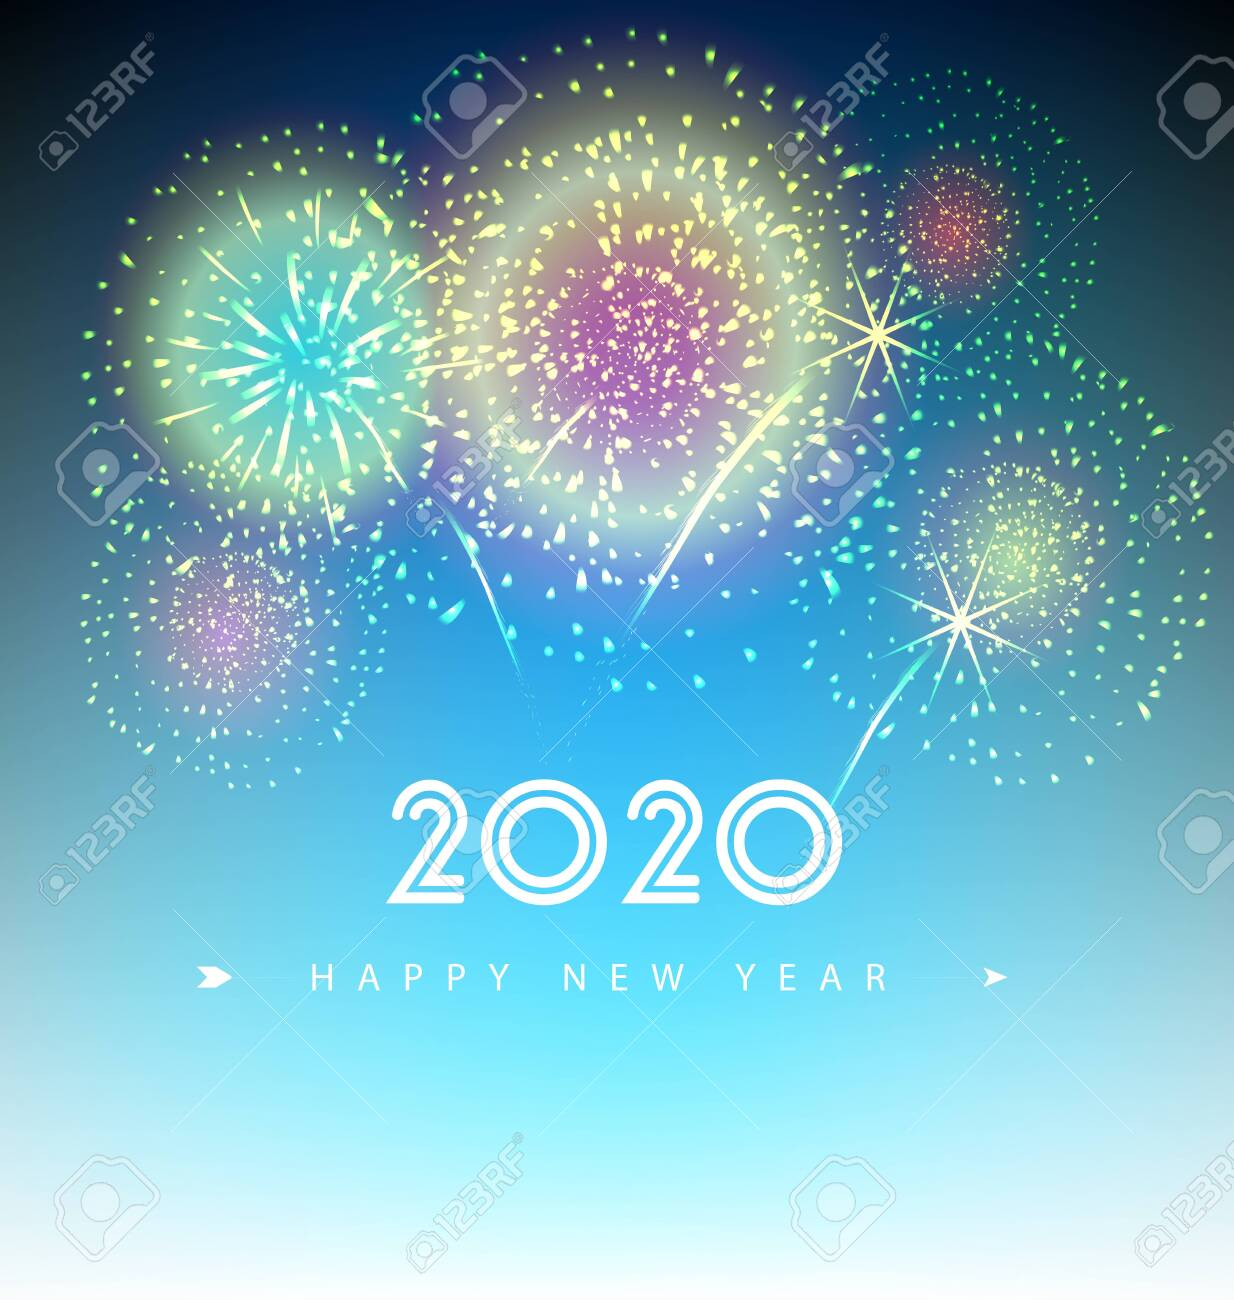 1234x1300 - Happy New Year Backgrounds 3